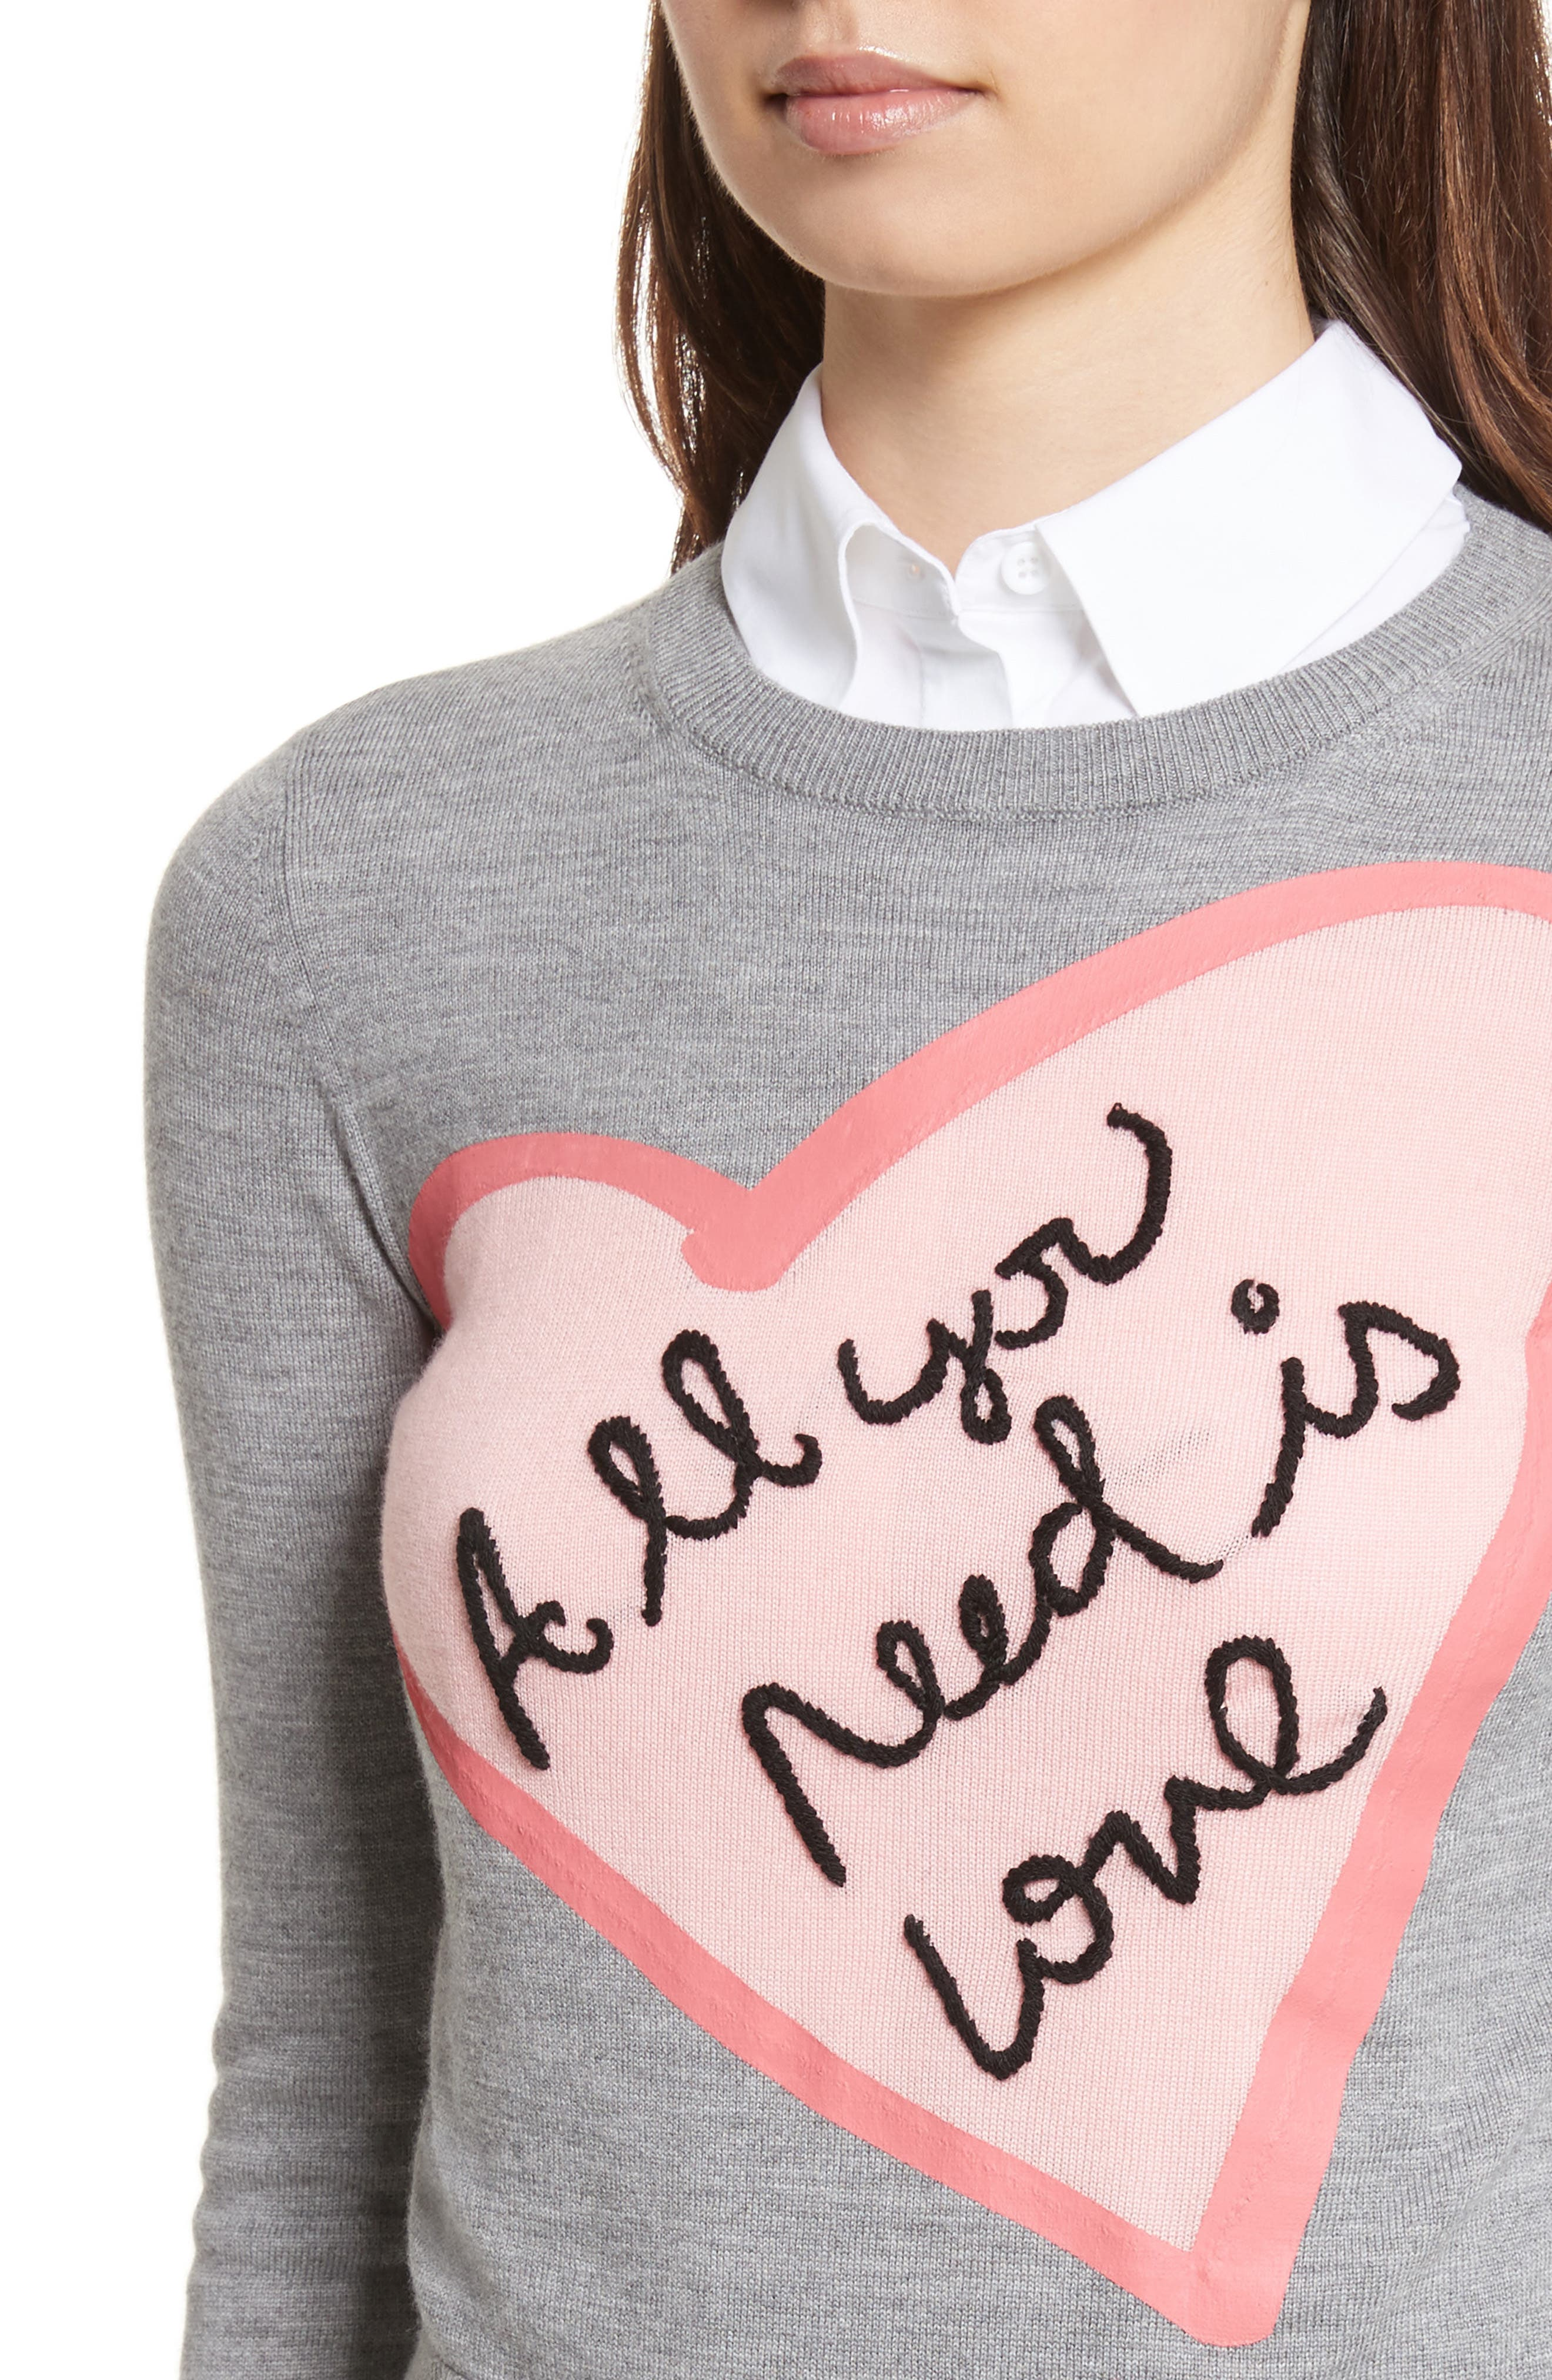 AO x The Beatles Nikia All You Need is Love Pullover,                             Alternate thumbnail 4, color,                             Medium Grey/ Pink/ White